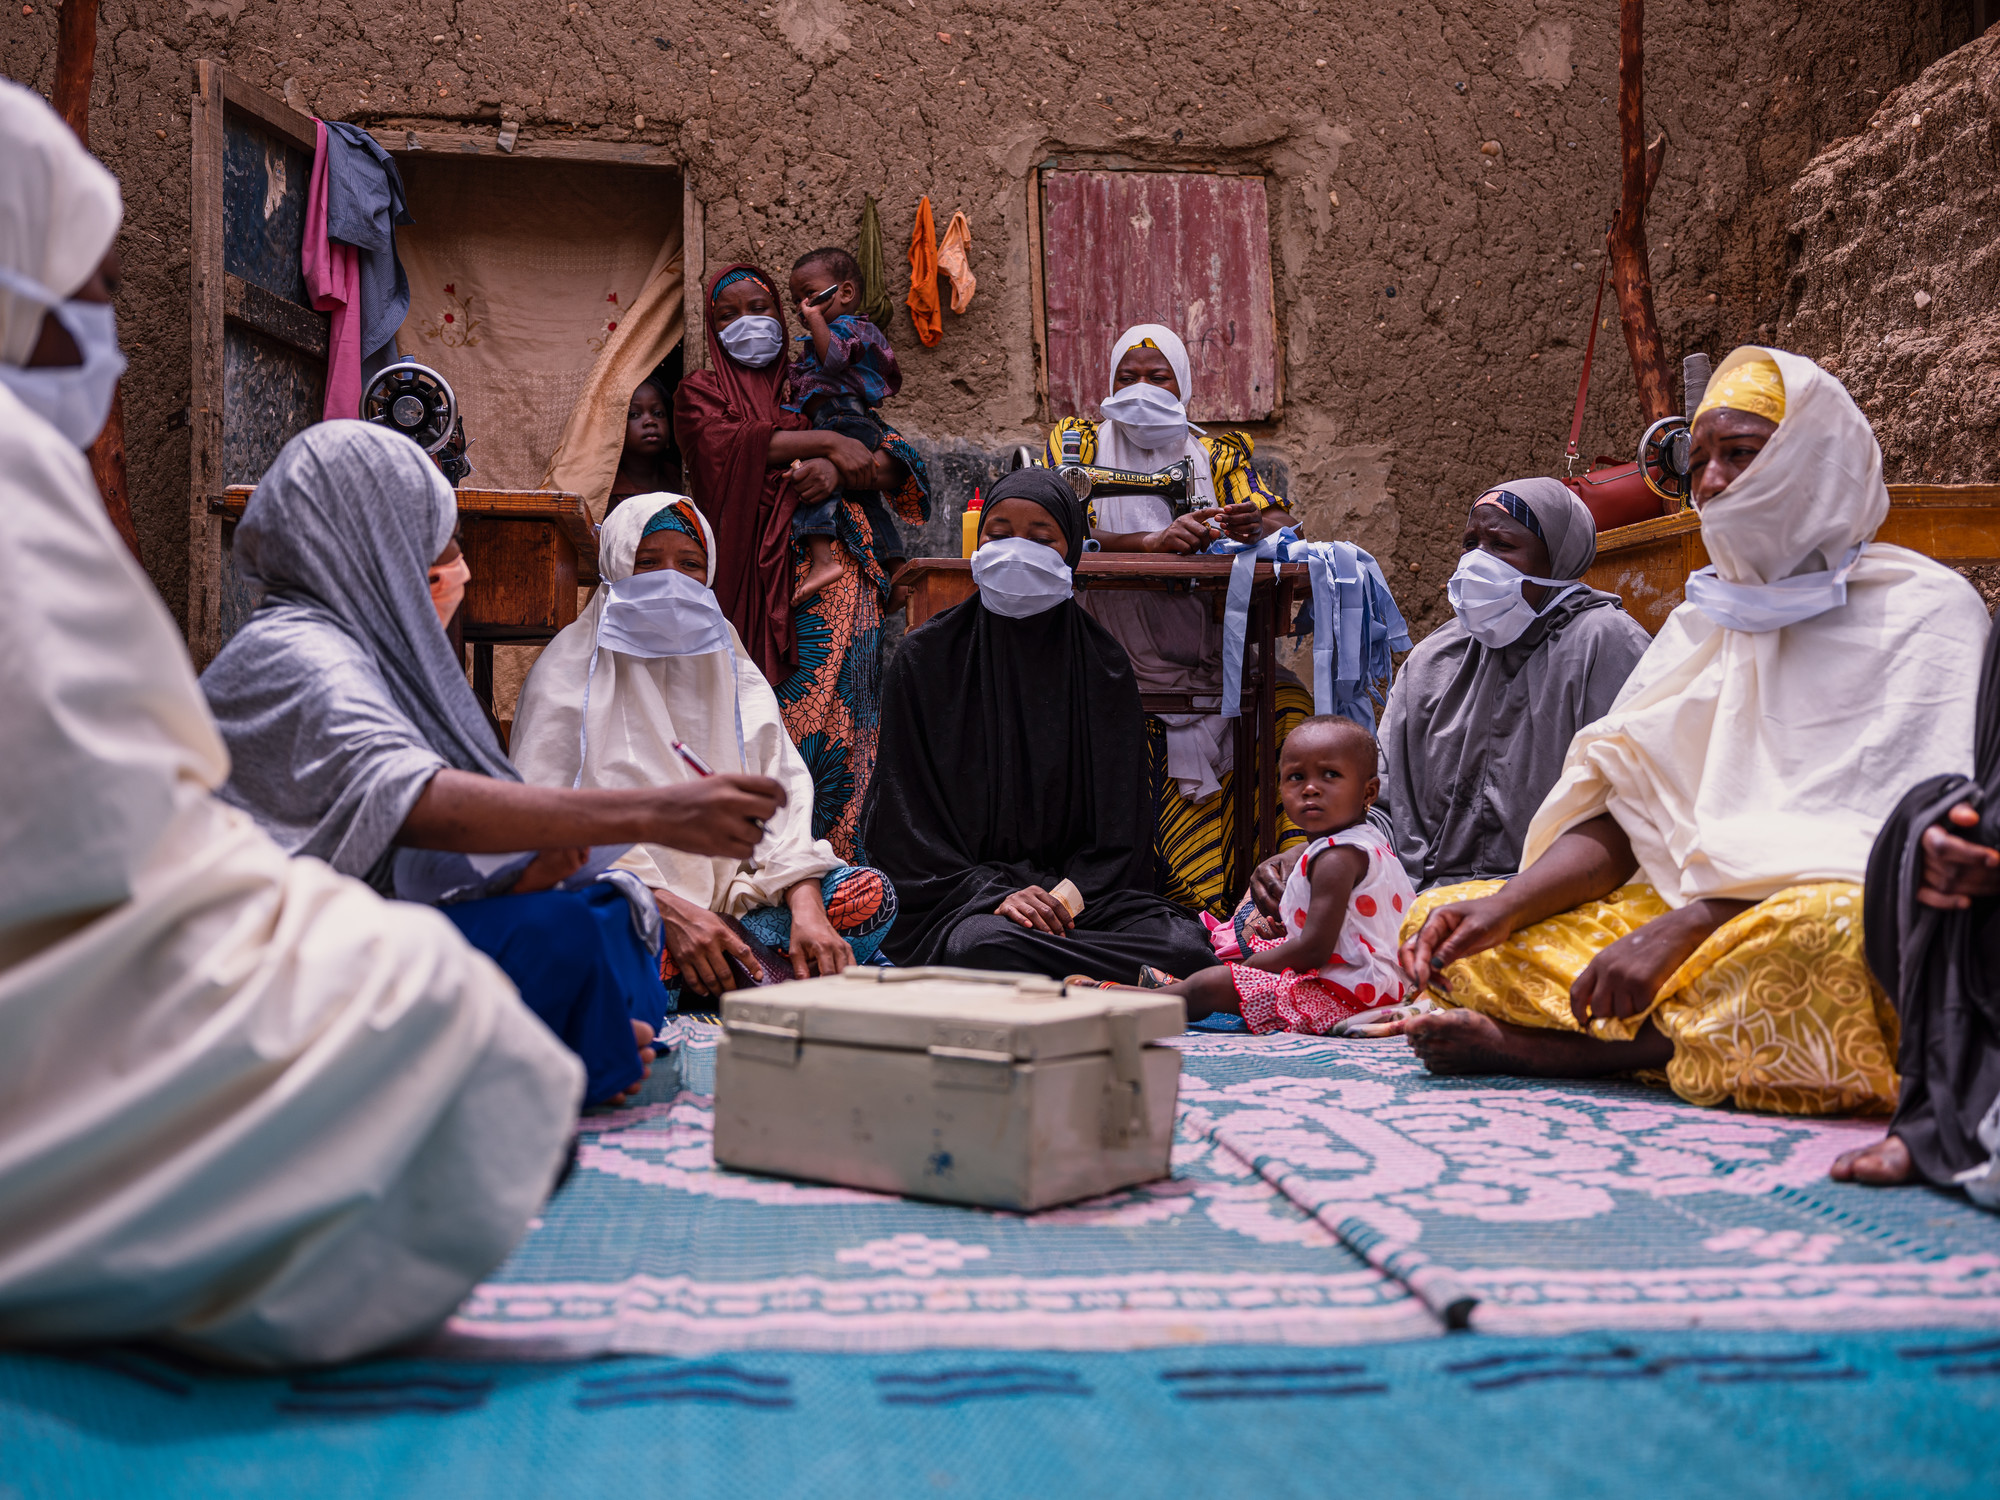 A group of women in a meeting while sitting on a rug with a money lockbox .